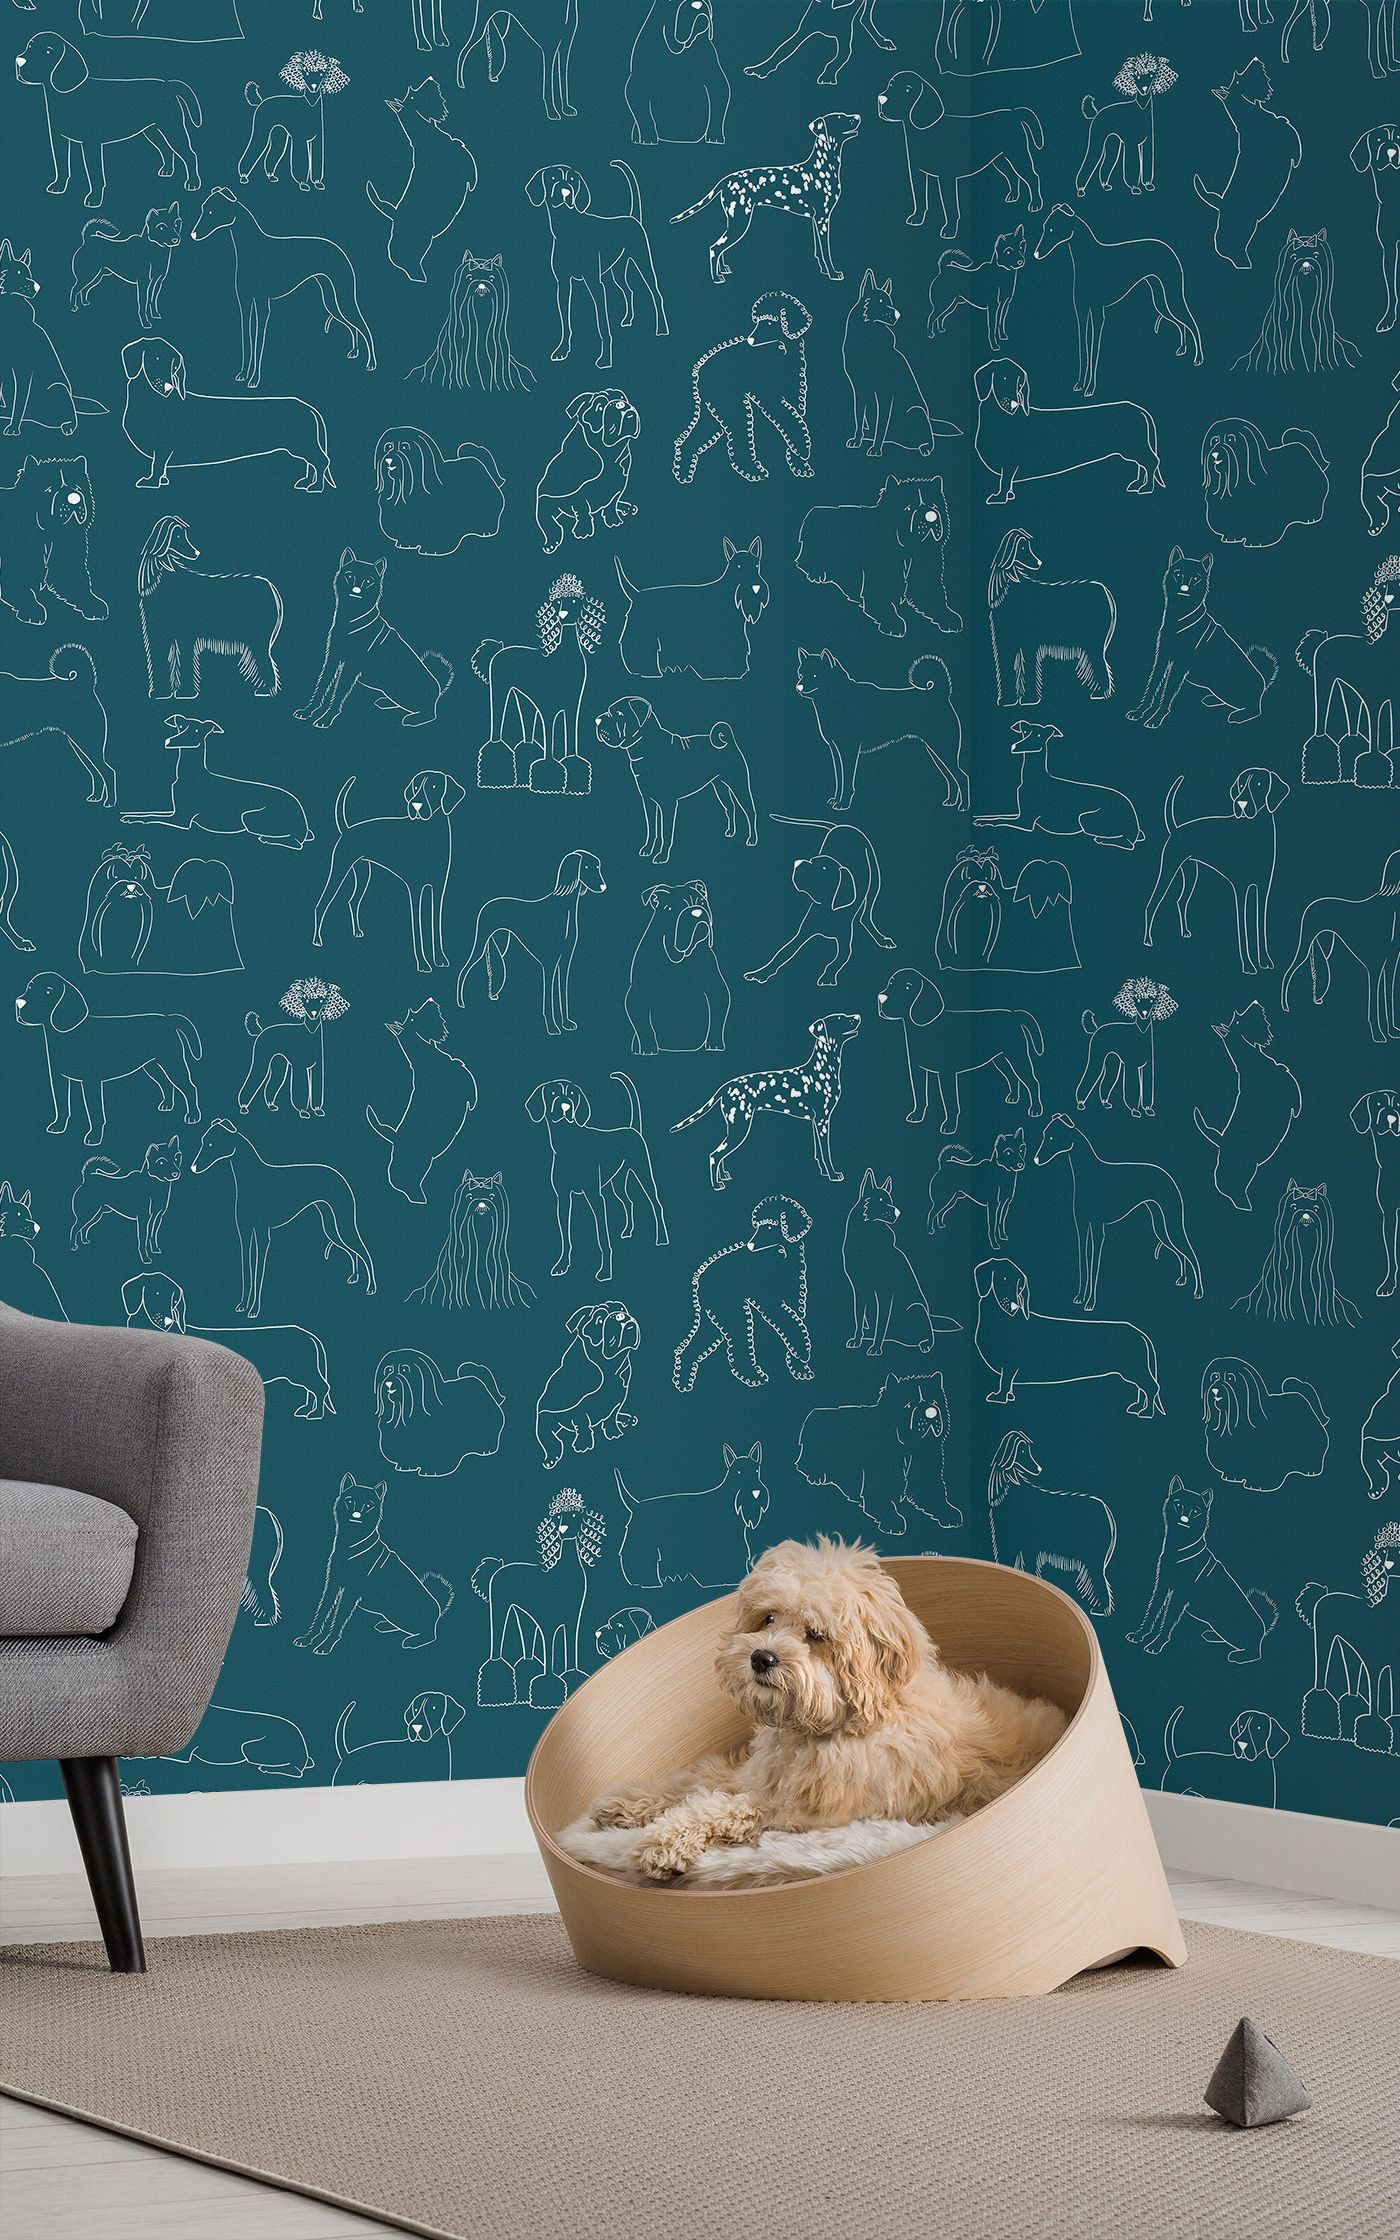 Dog Patterned Wall Coverings From Murals Wallpaper Mural Wallpaper Dog Wallpaper Wall Patterns